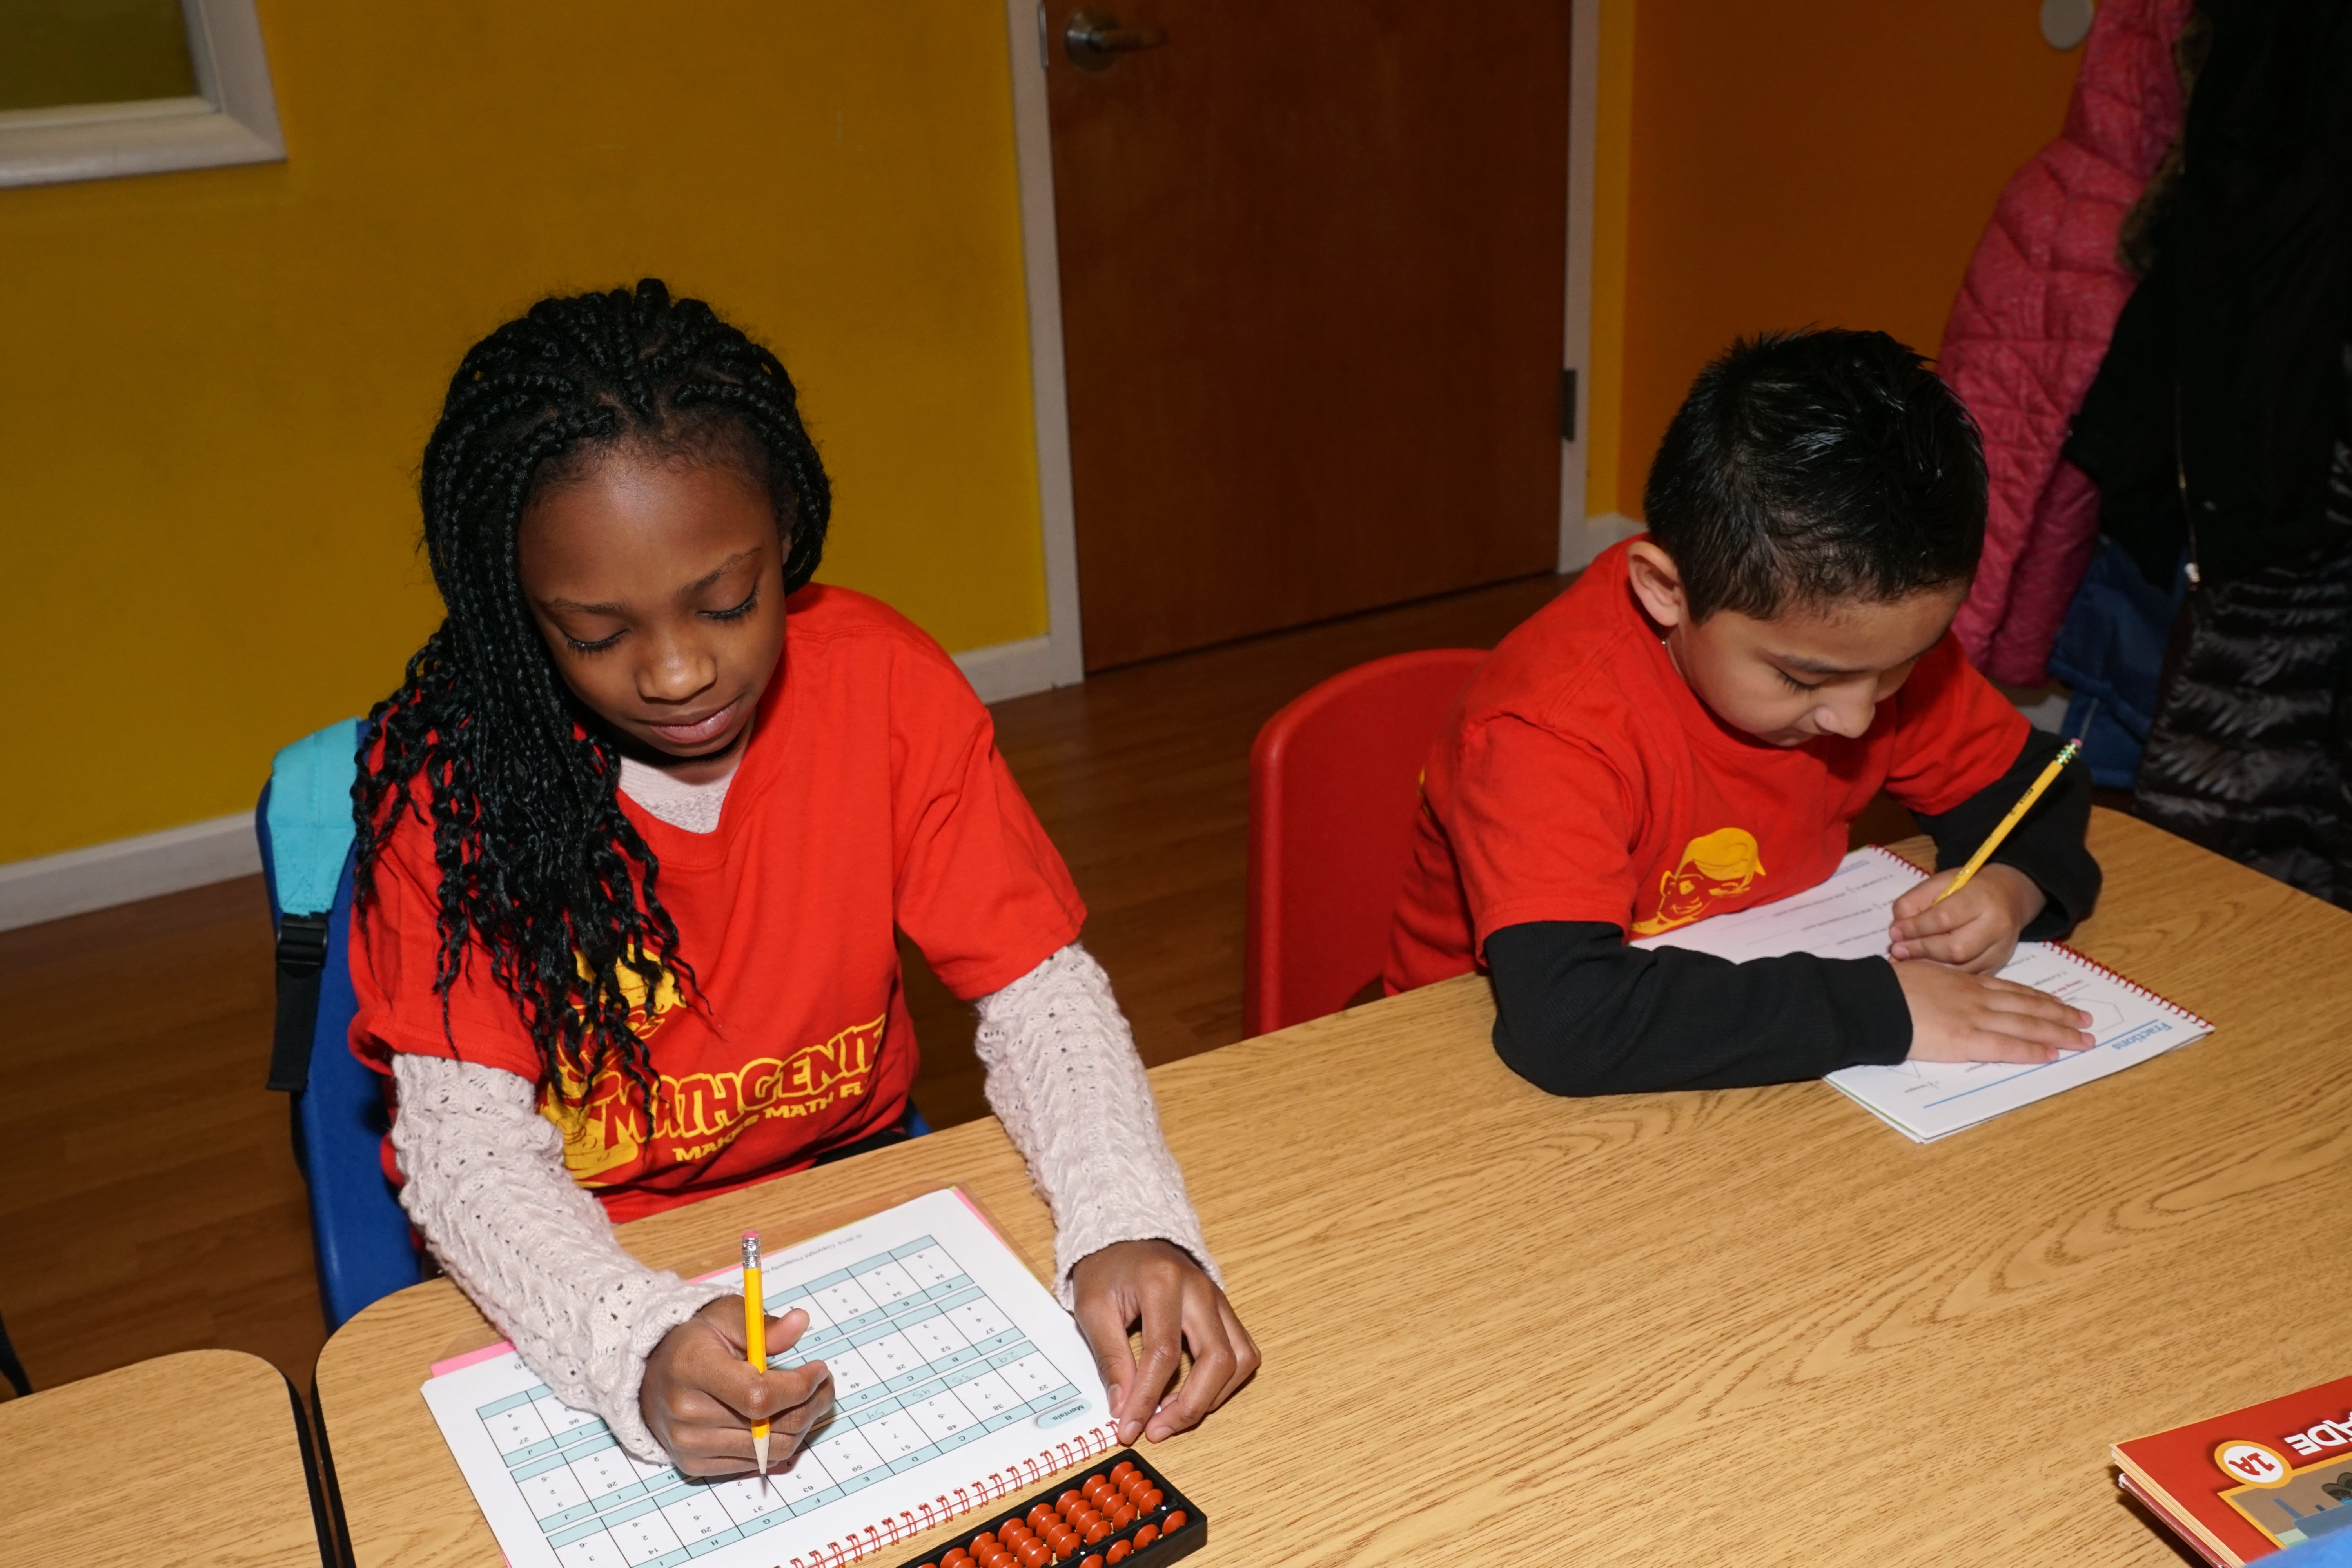 your child with have better focus and concentration using our methods at Math Genie